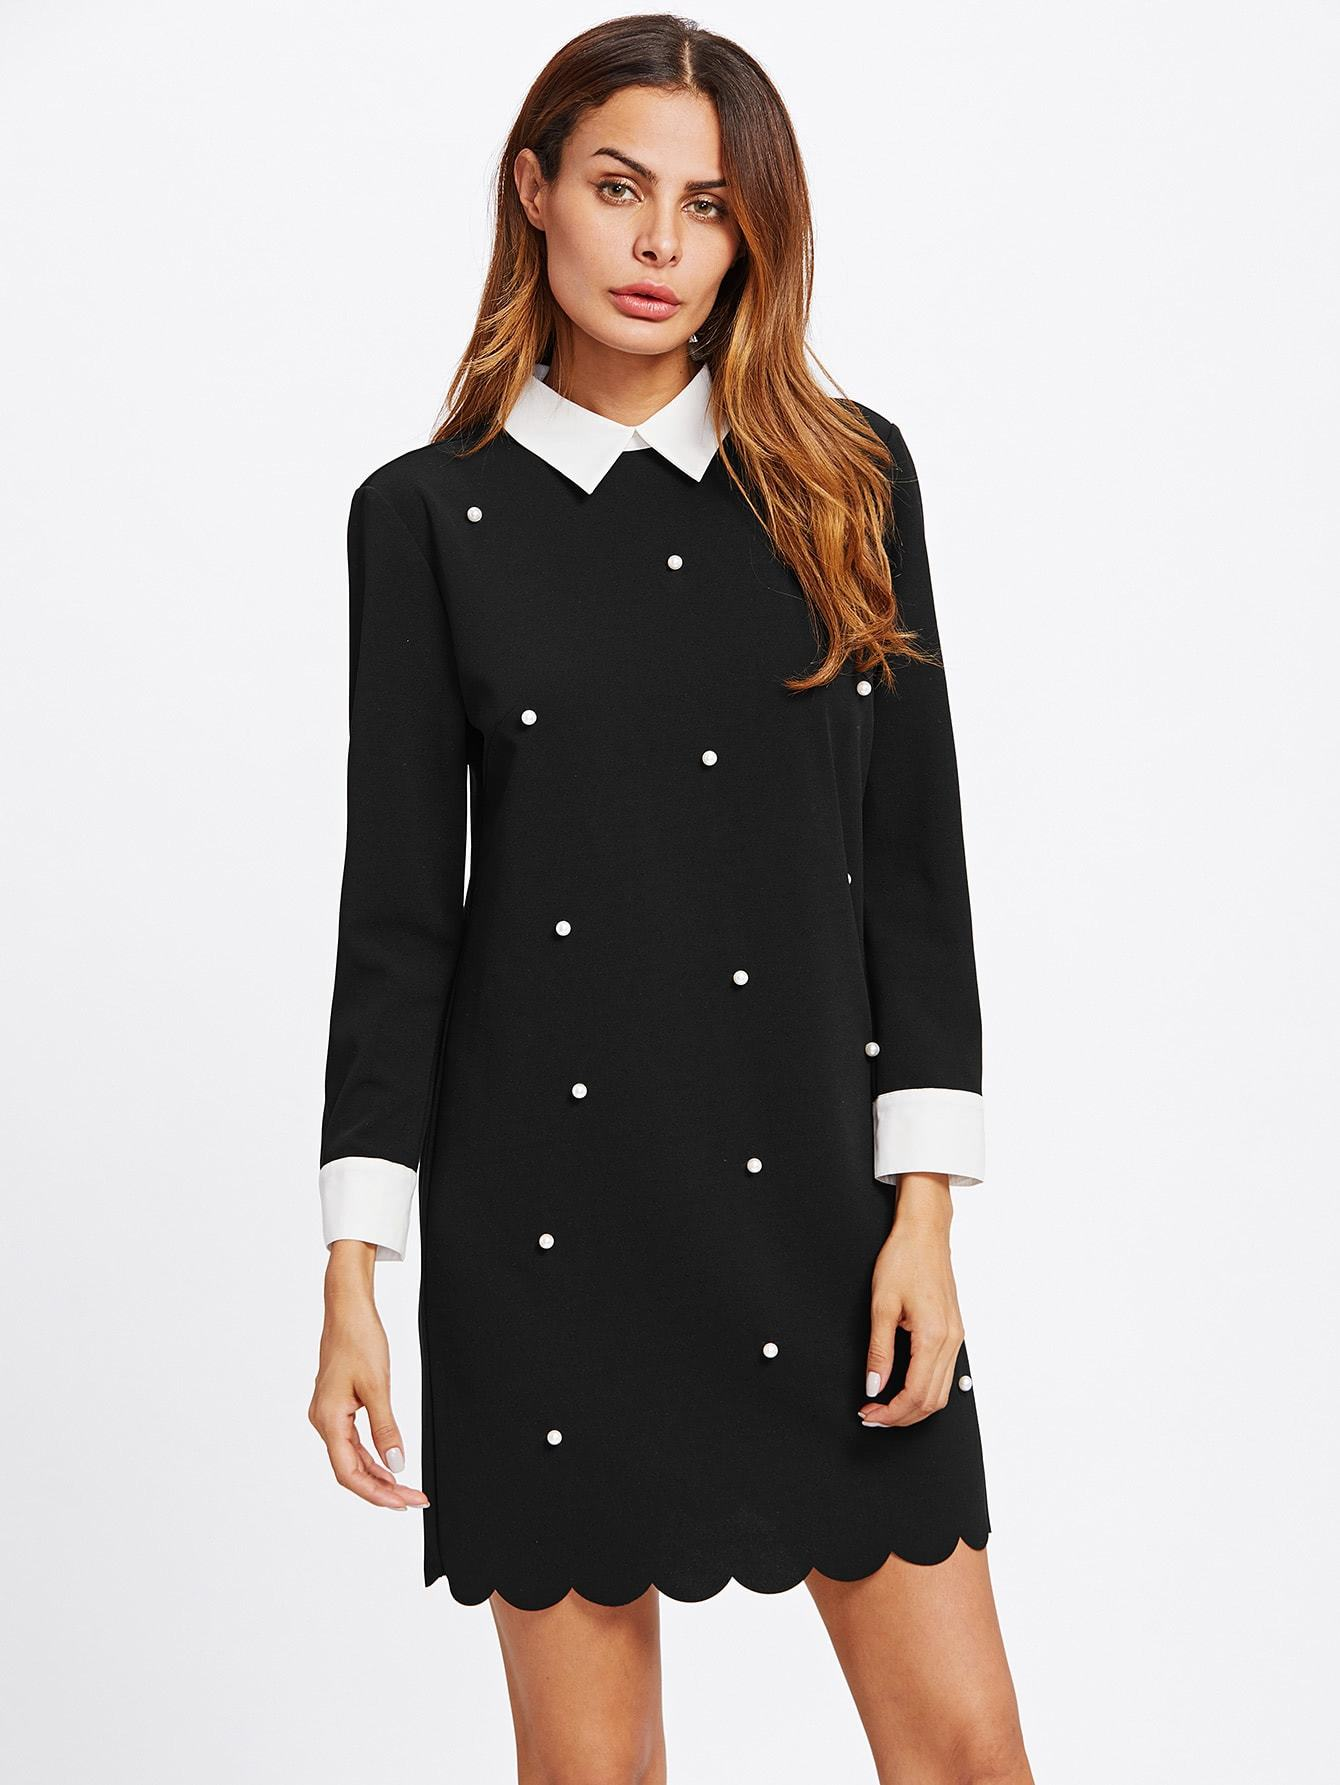 Pearl Scalloped Dress - LoveSylvester